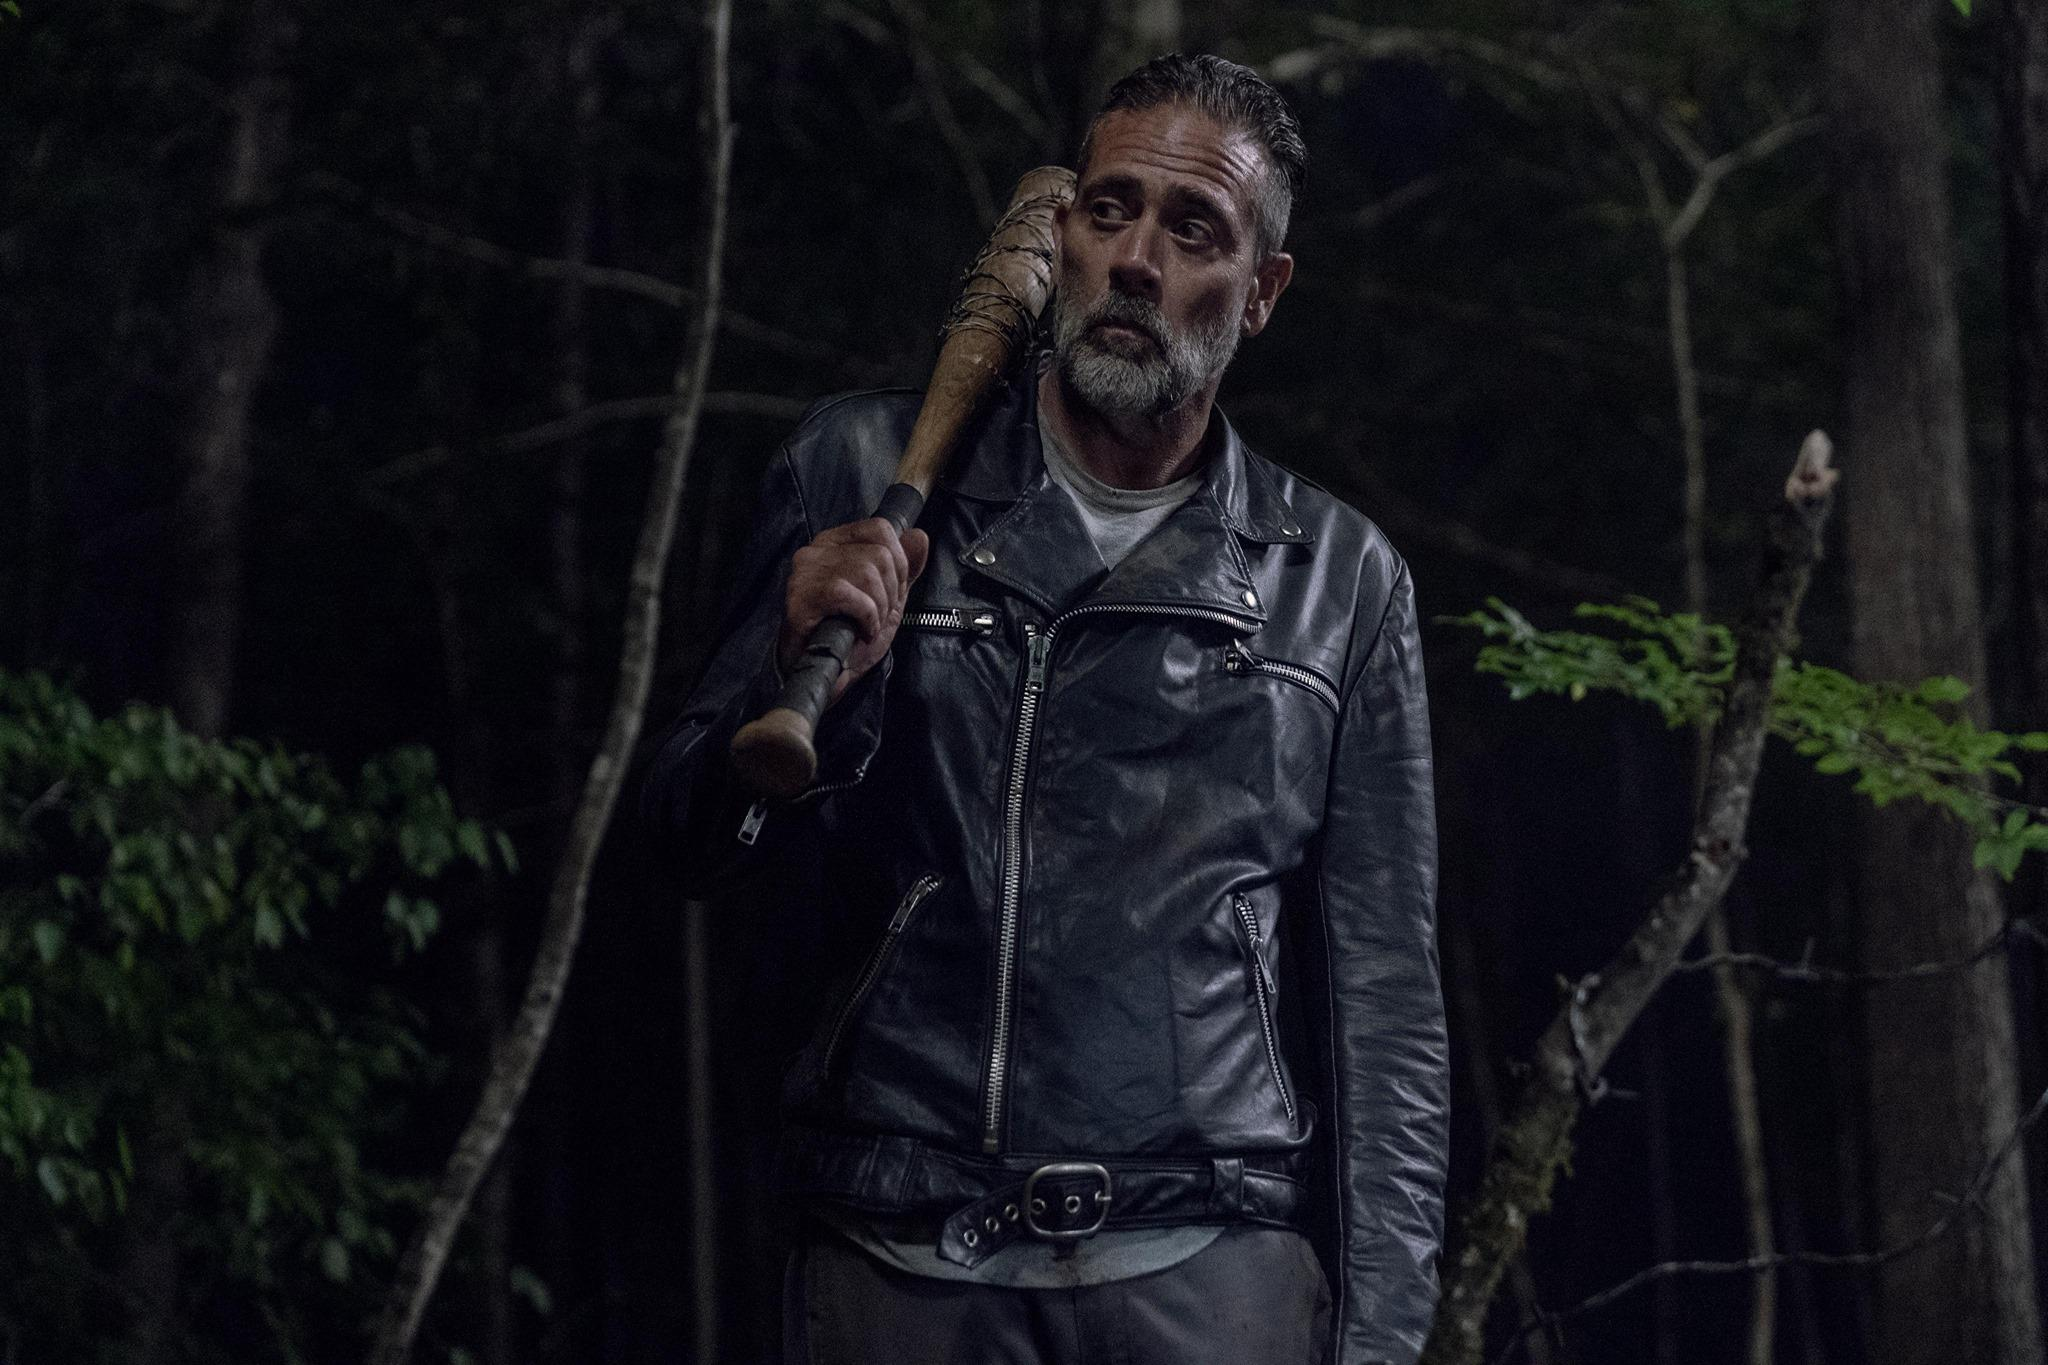 walking dead season 6 episode 12 stream